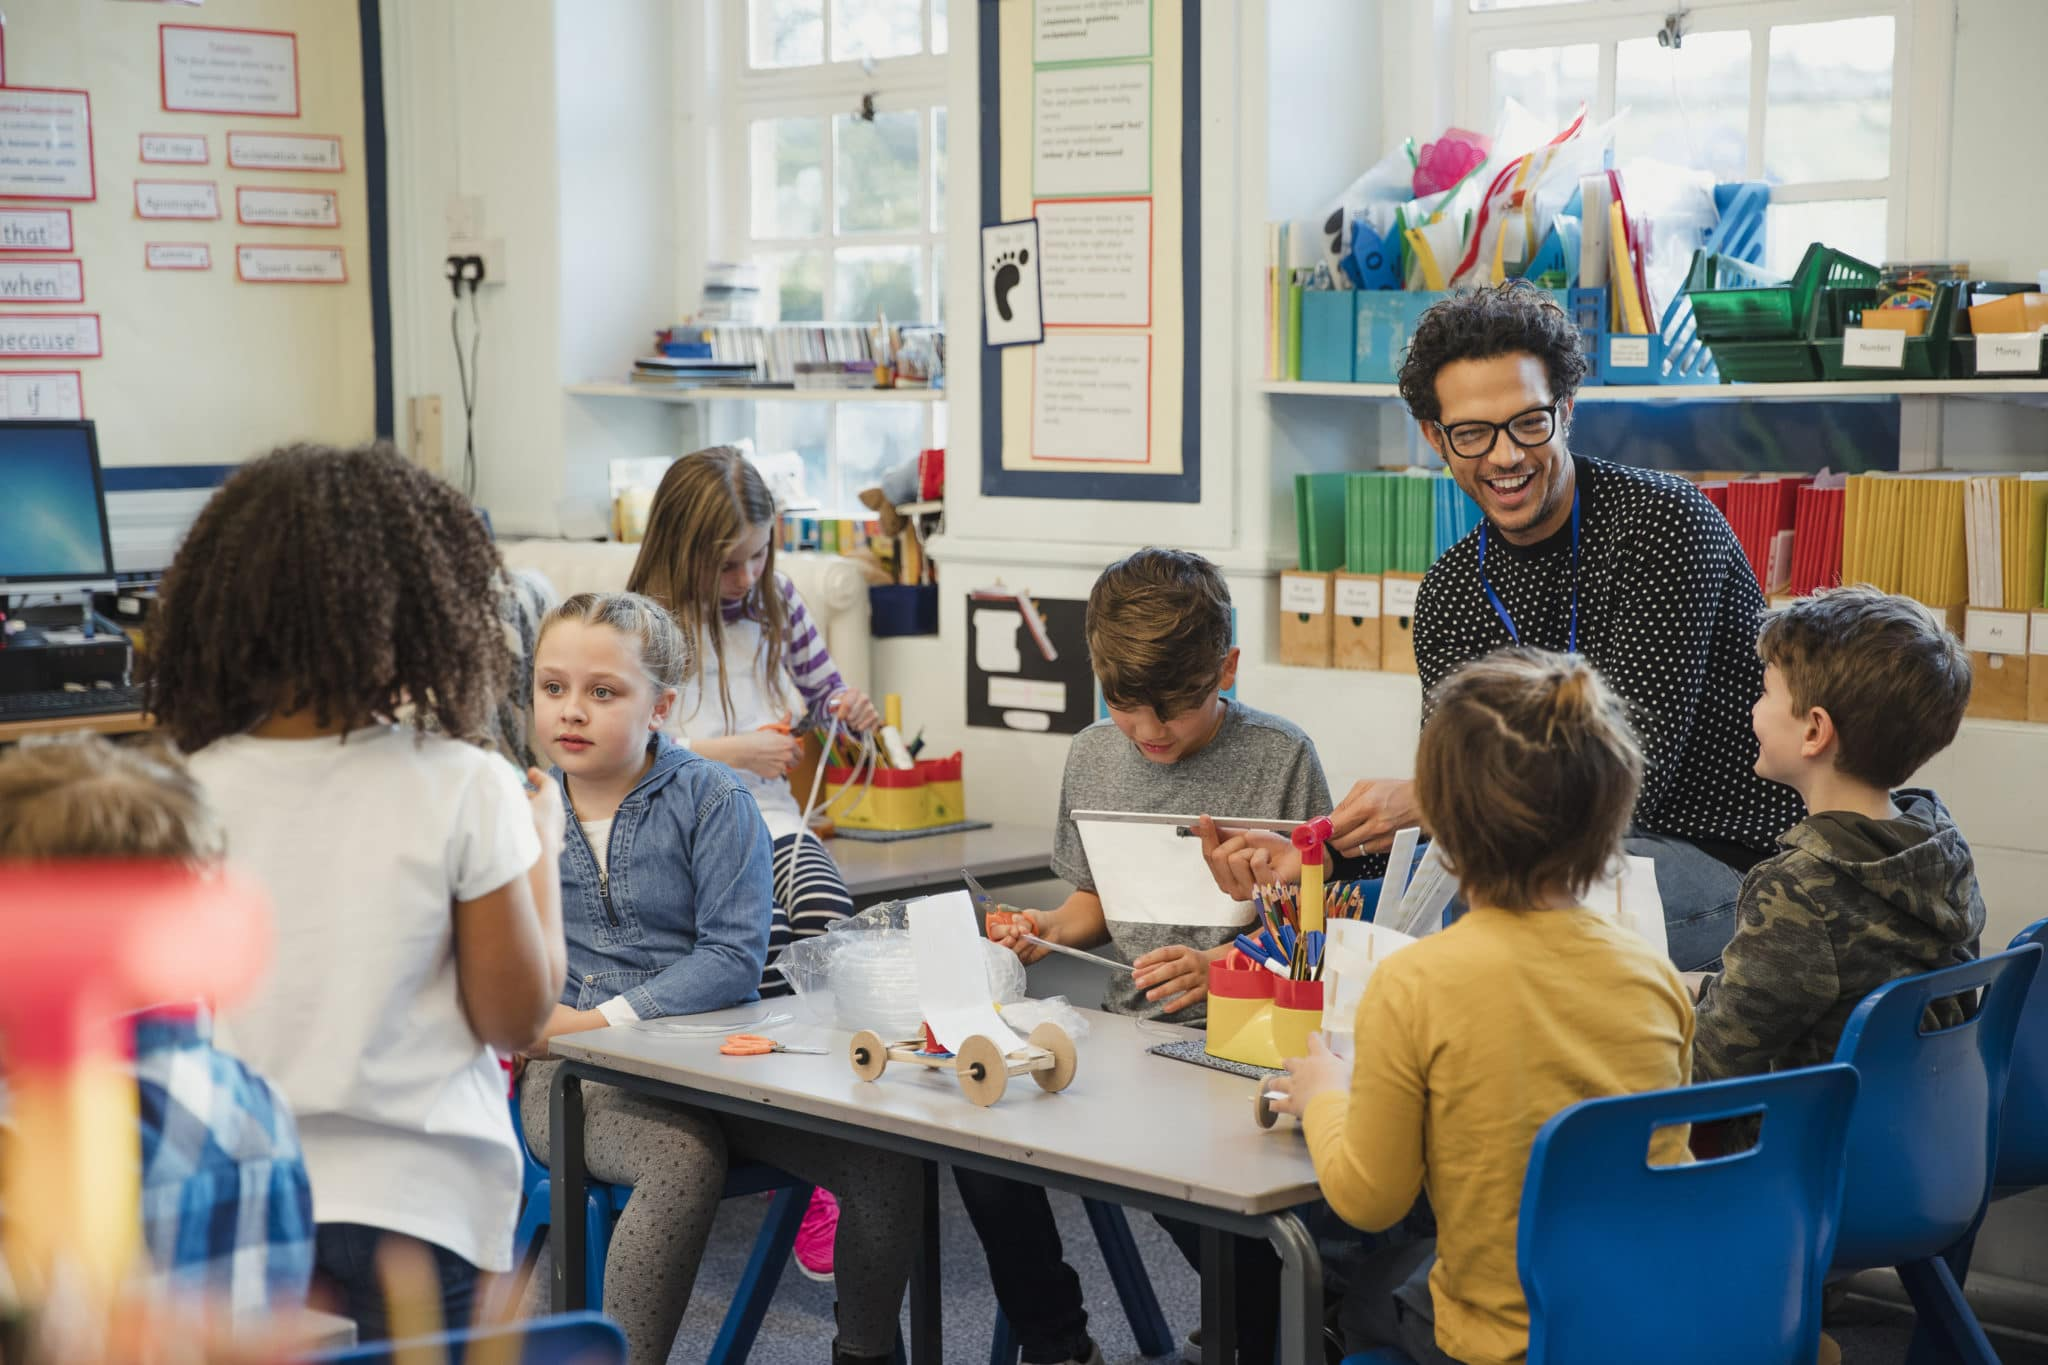 We specialise in autism in mainstream schools, inclusion of students with disabilities, education psychology, autism education, community building and training on inclusion.